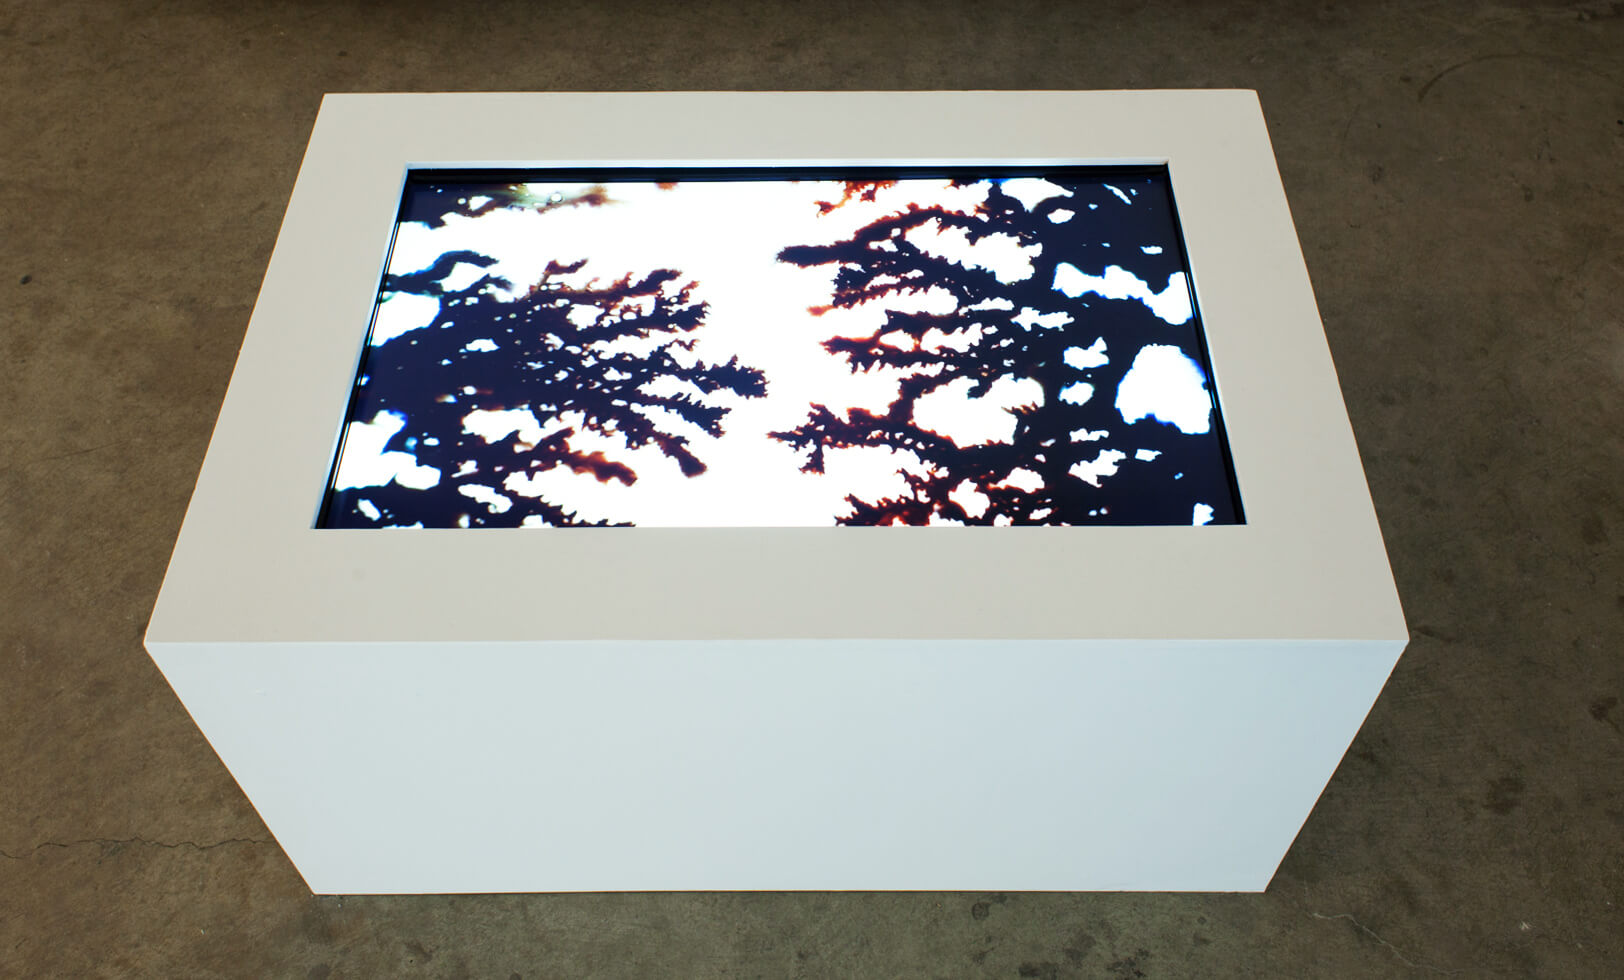 Installation view.  Expansive, 2015, plywood box, monitor, HD video, color, no sound, 5 min